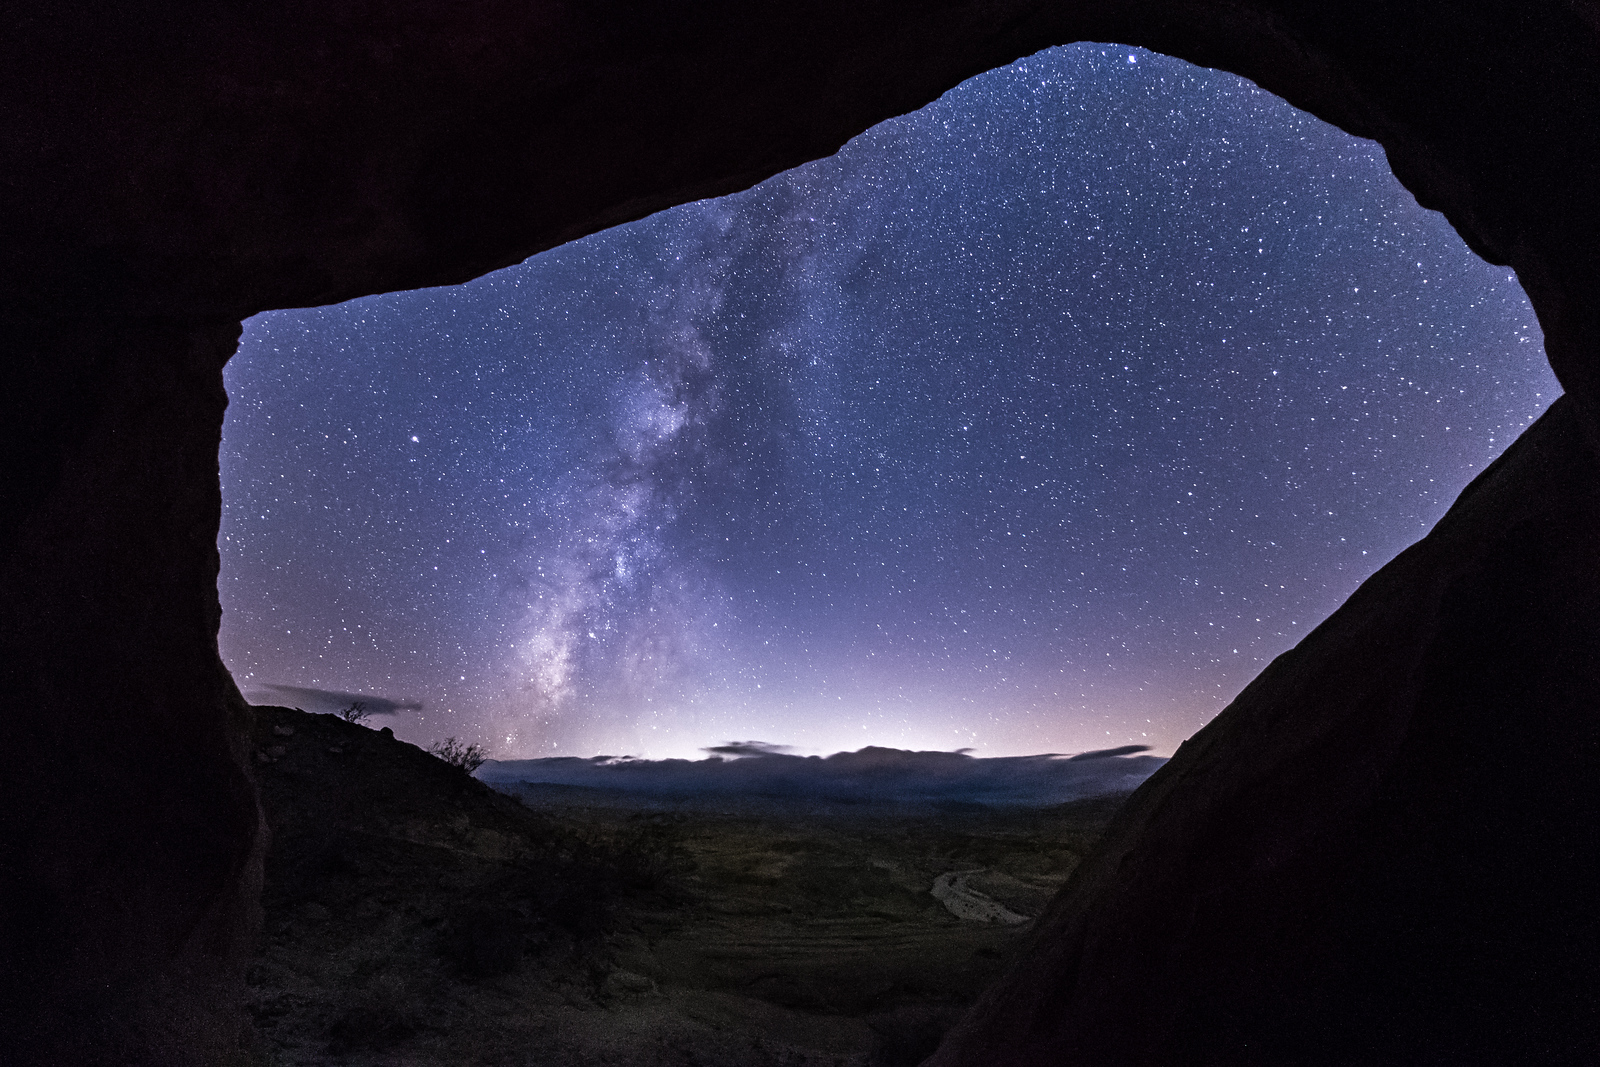 The Milky Way Seen From Inside a Wind Cave